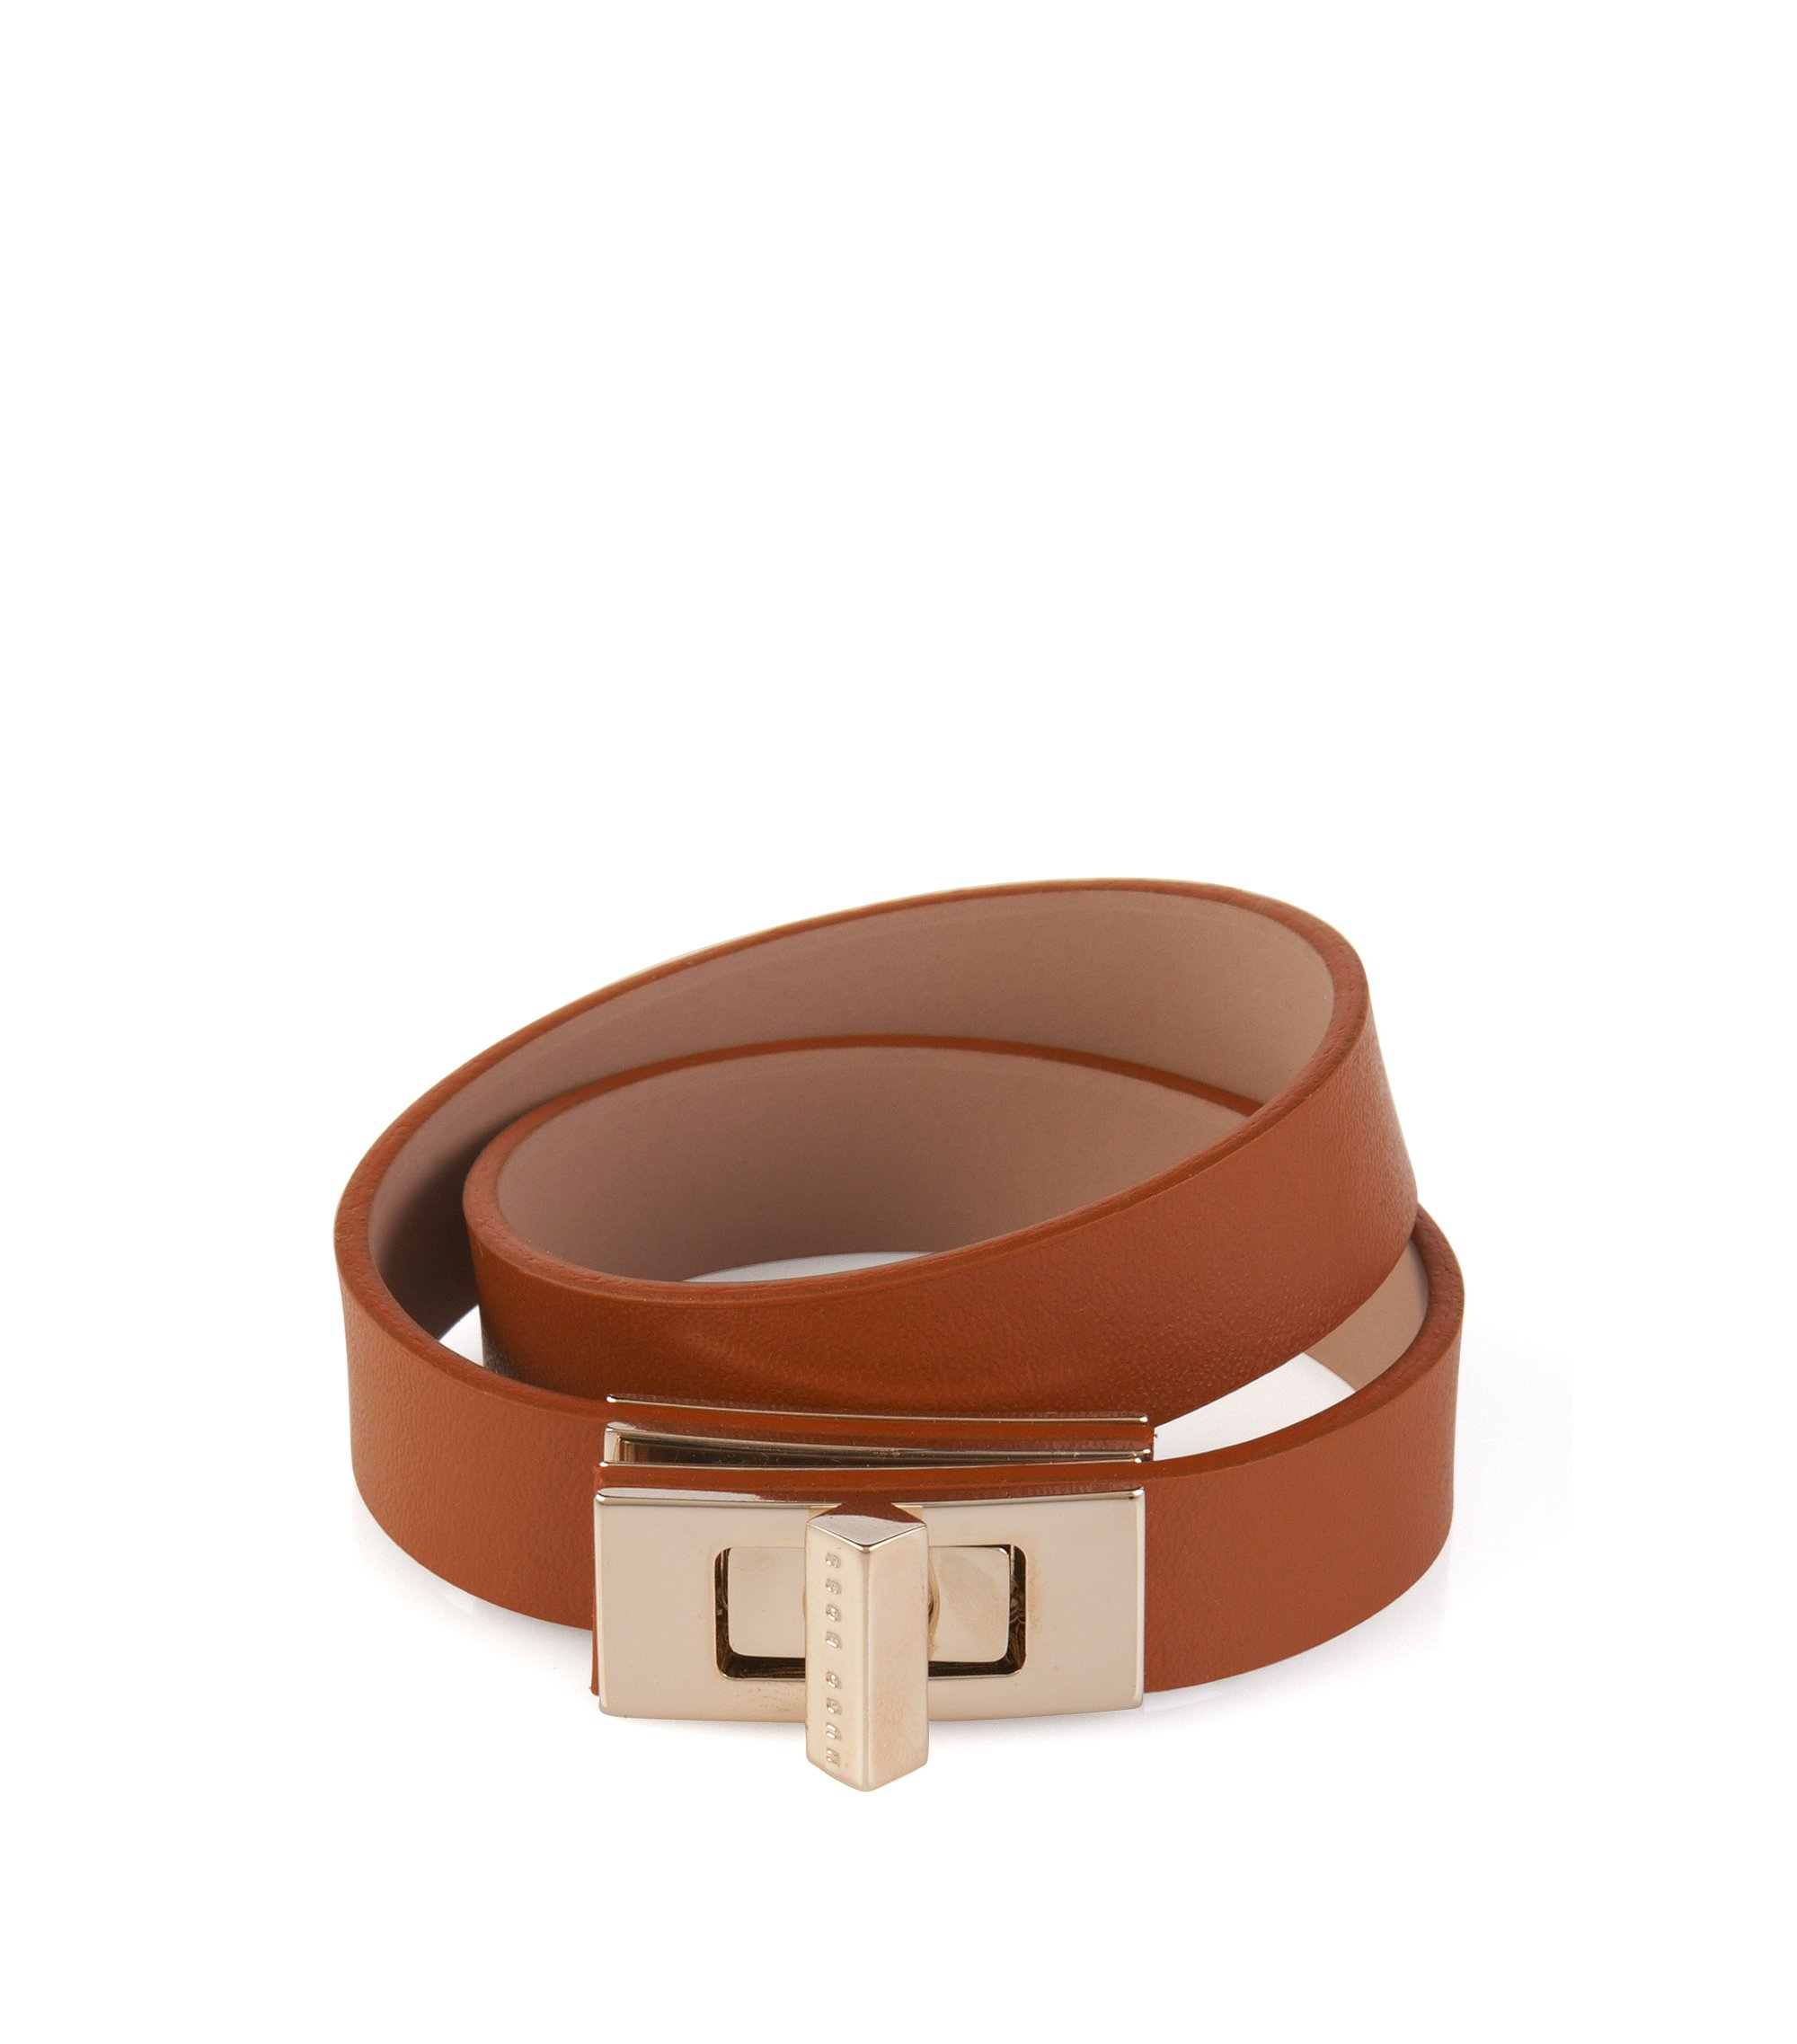 Plain BOSS Bespoke bracelet in leather, Brown